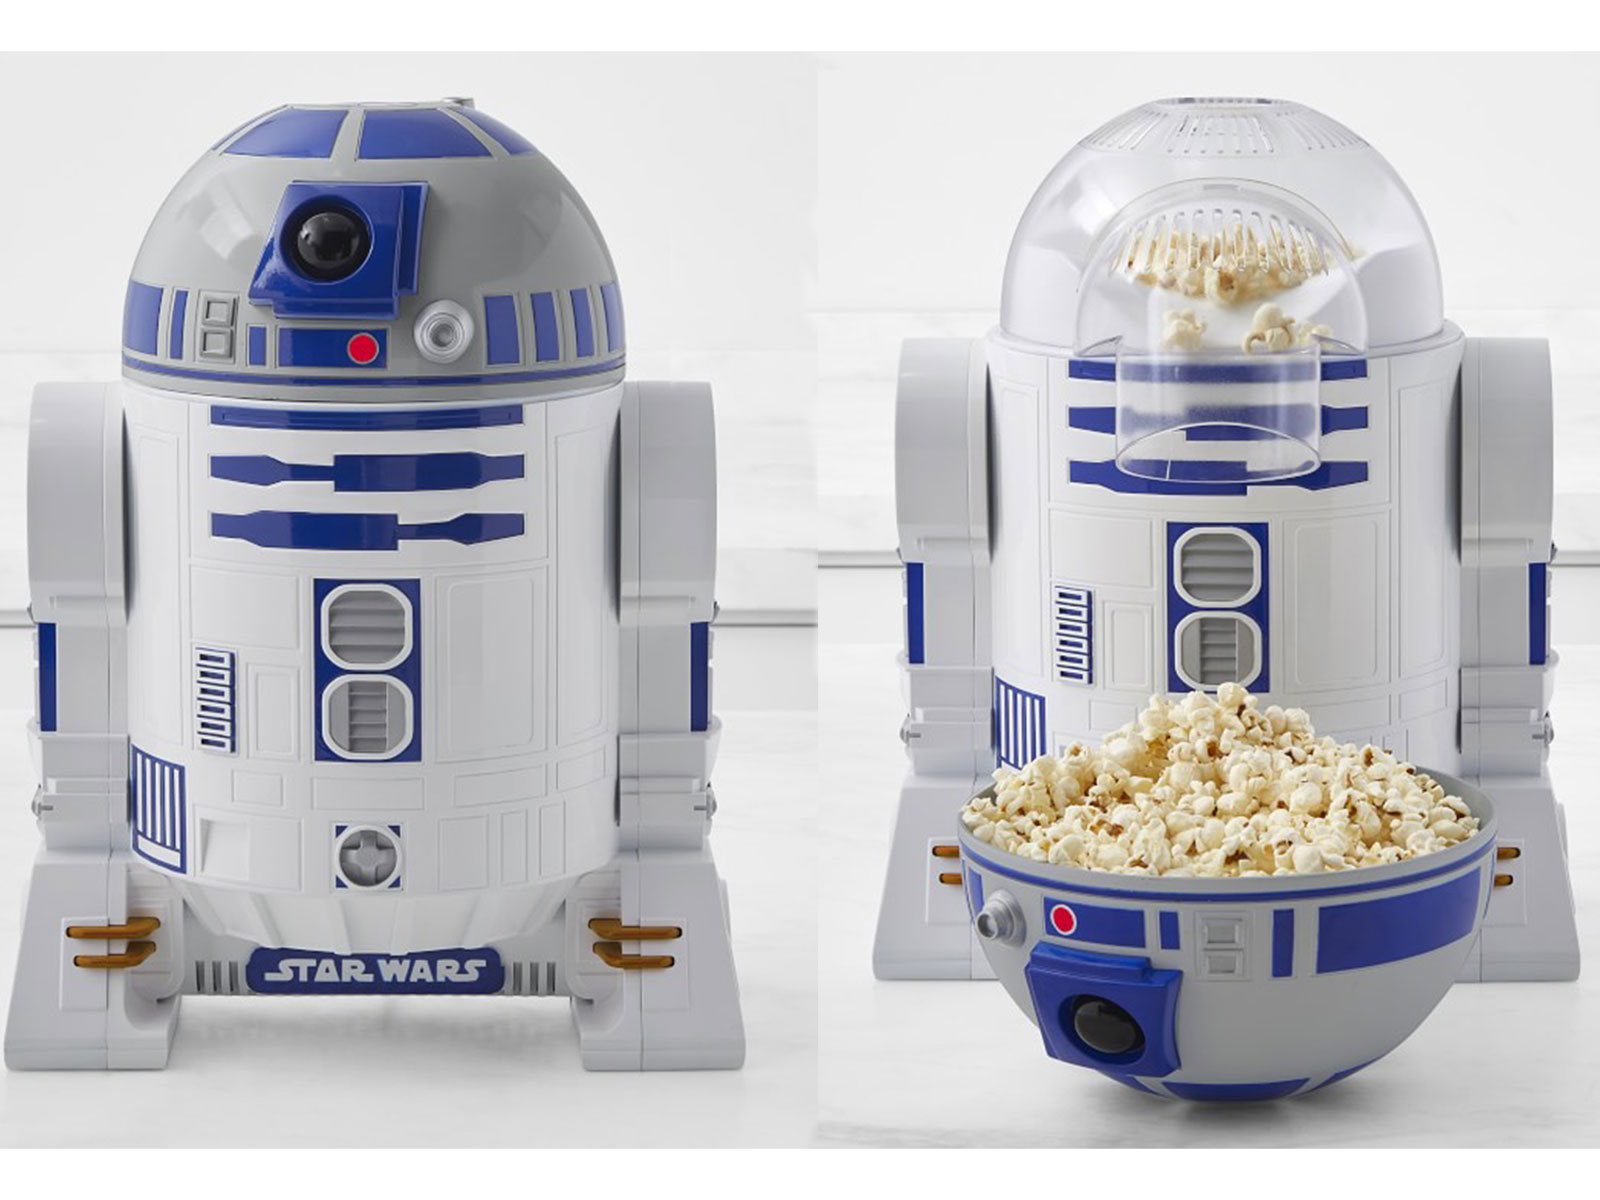 Star Wars R2D2 popcorn maker